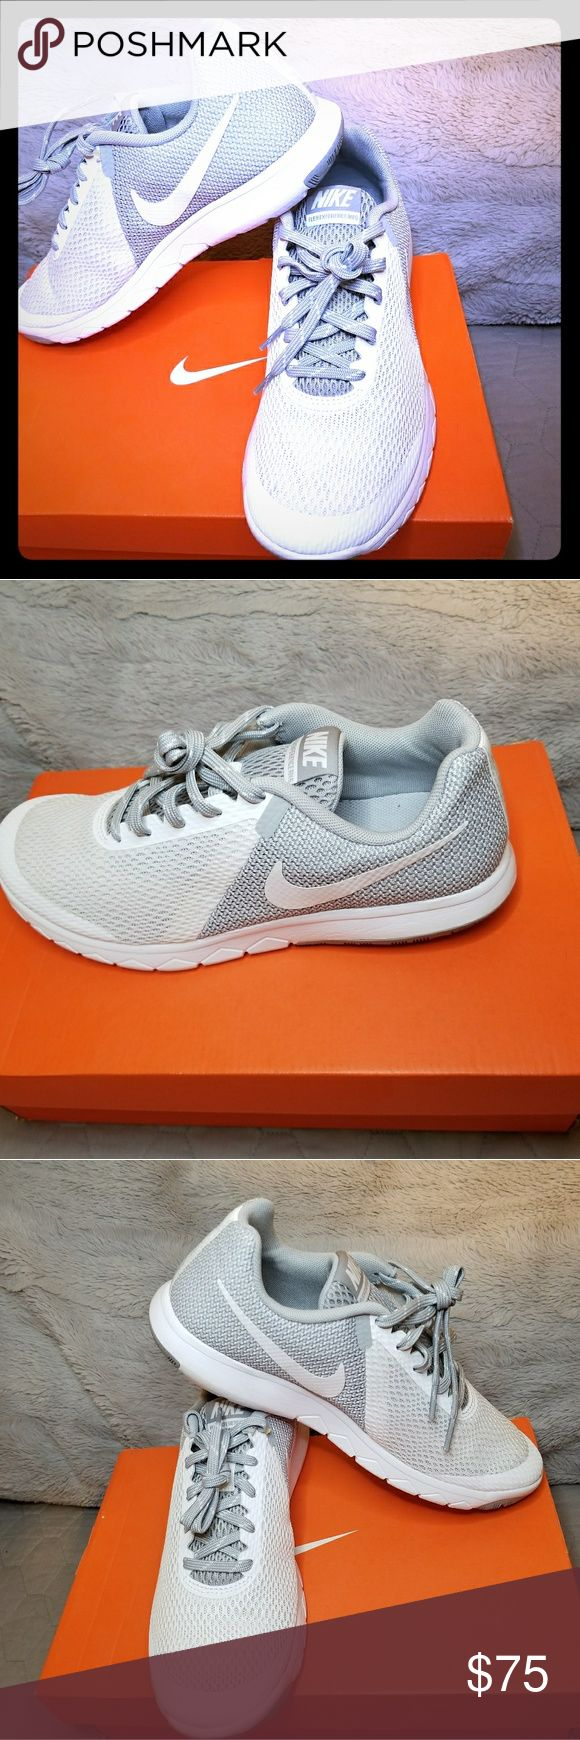 Wmns Nike flex experience rn 5 Brand new never worn white and grey original nike shoes for women size 9 Nike Shoes Athletic Shoes